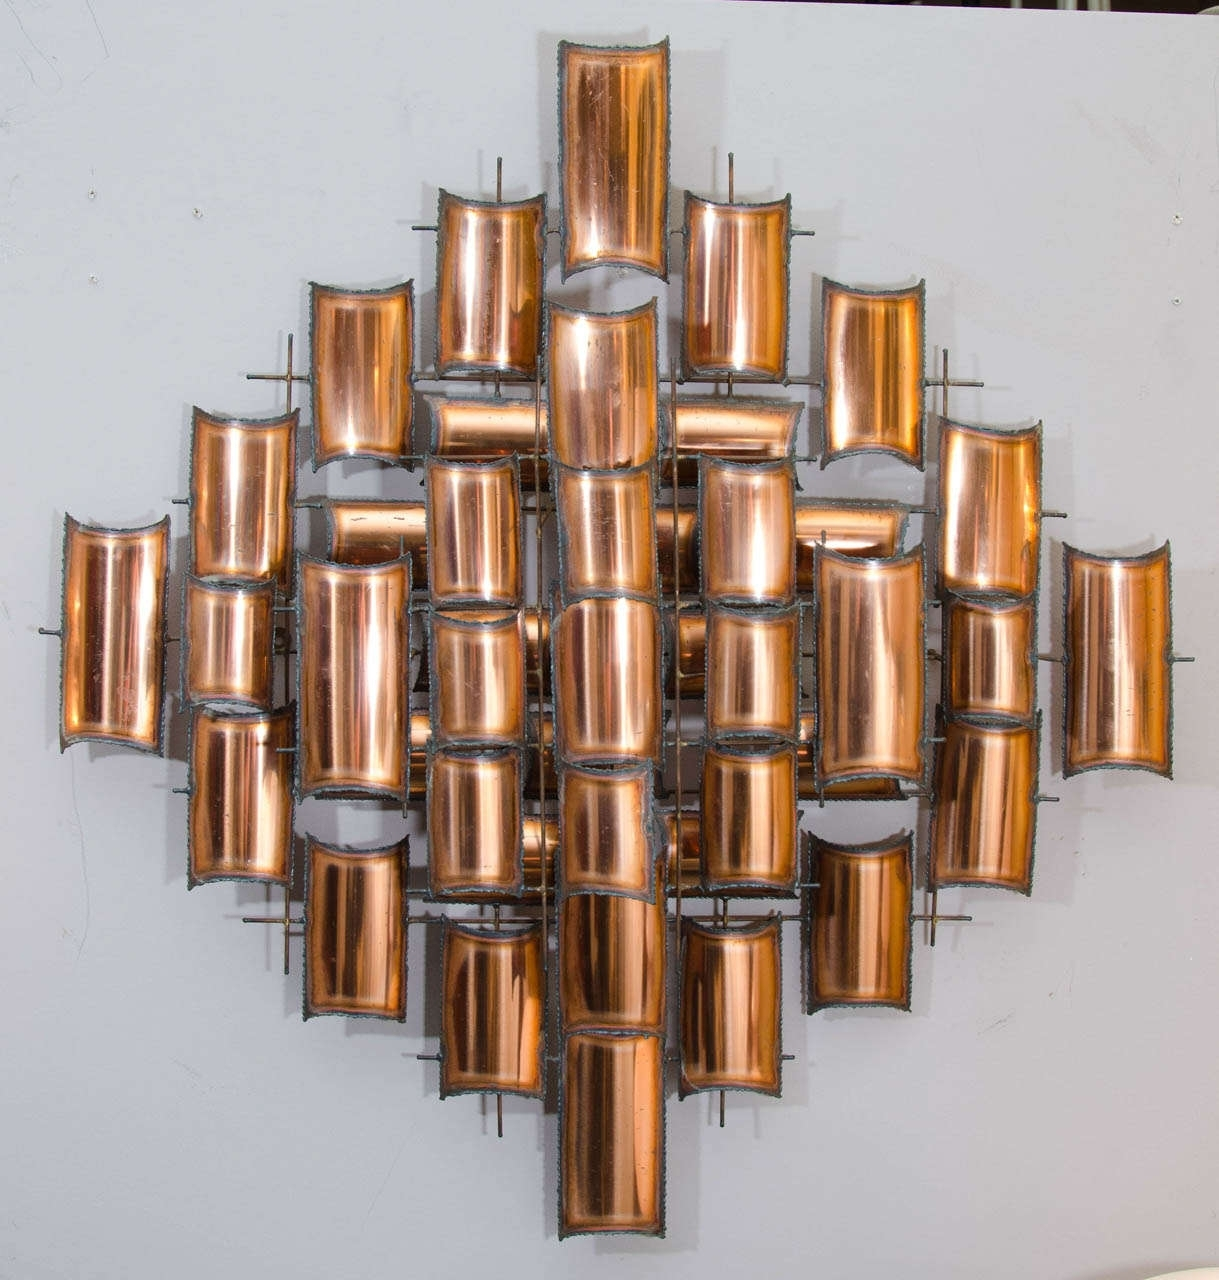 Wall Art Designs: Copper Wall Art Home Decorate Wall Art Abstract Within 2018 Abstract Metal Fish Wall Art (View 10 of 20)